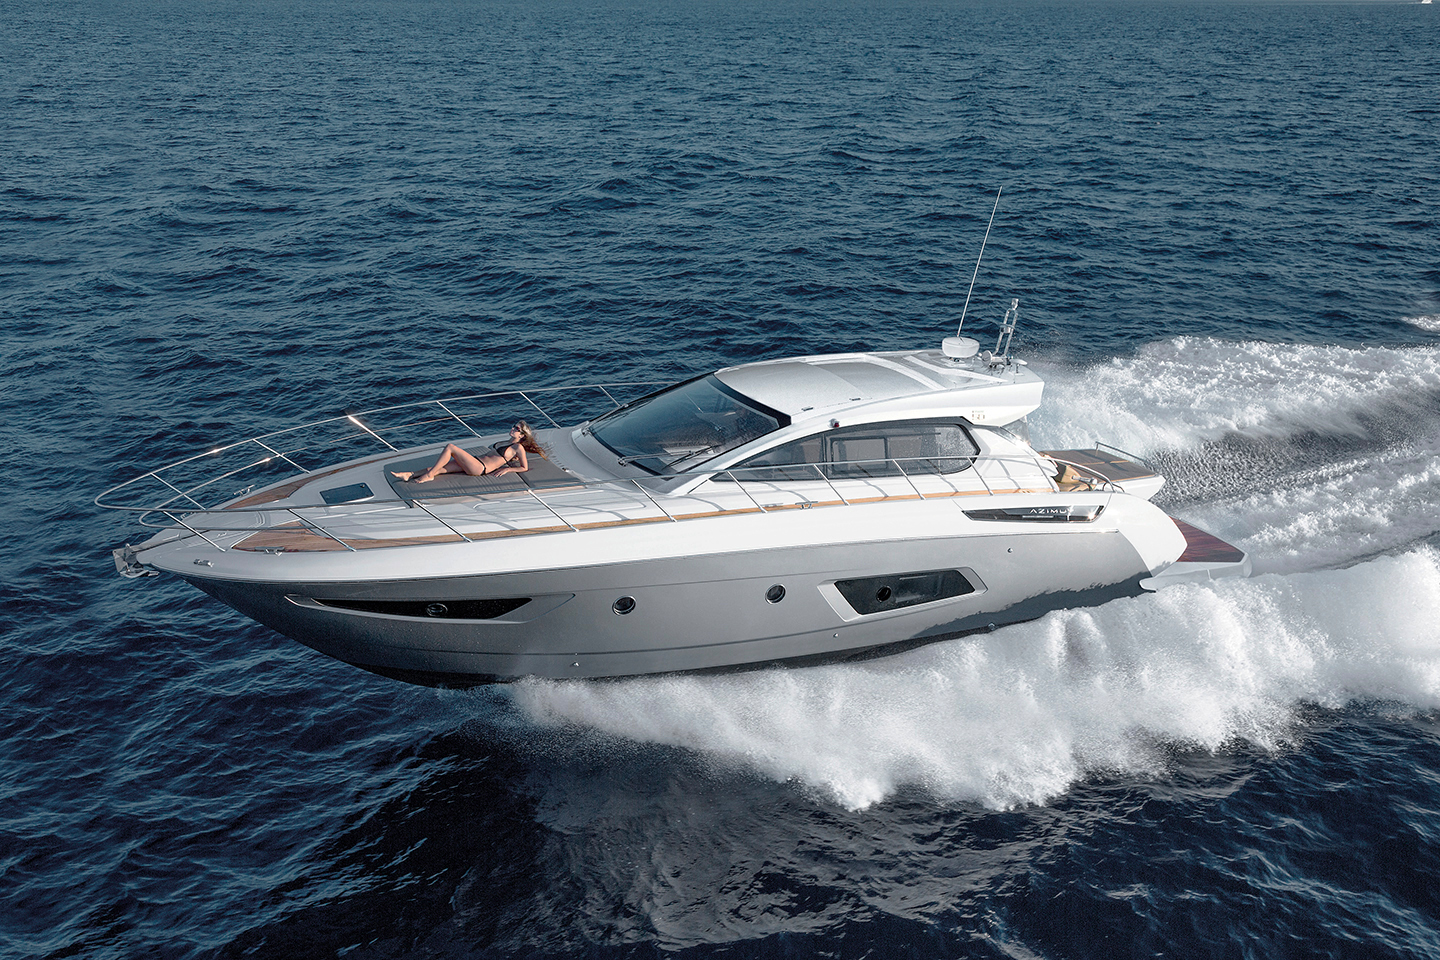 history of azimut yachts 1946 with more than 50 sailing ships at his credit, in addition to fishing boats, gunboats, barges and any other kind of boats, giovan battista codecasa retires from the business and leaves the family company, located in the darsena toscana, to his two sons, ugo and sandro.